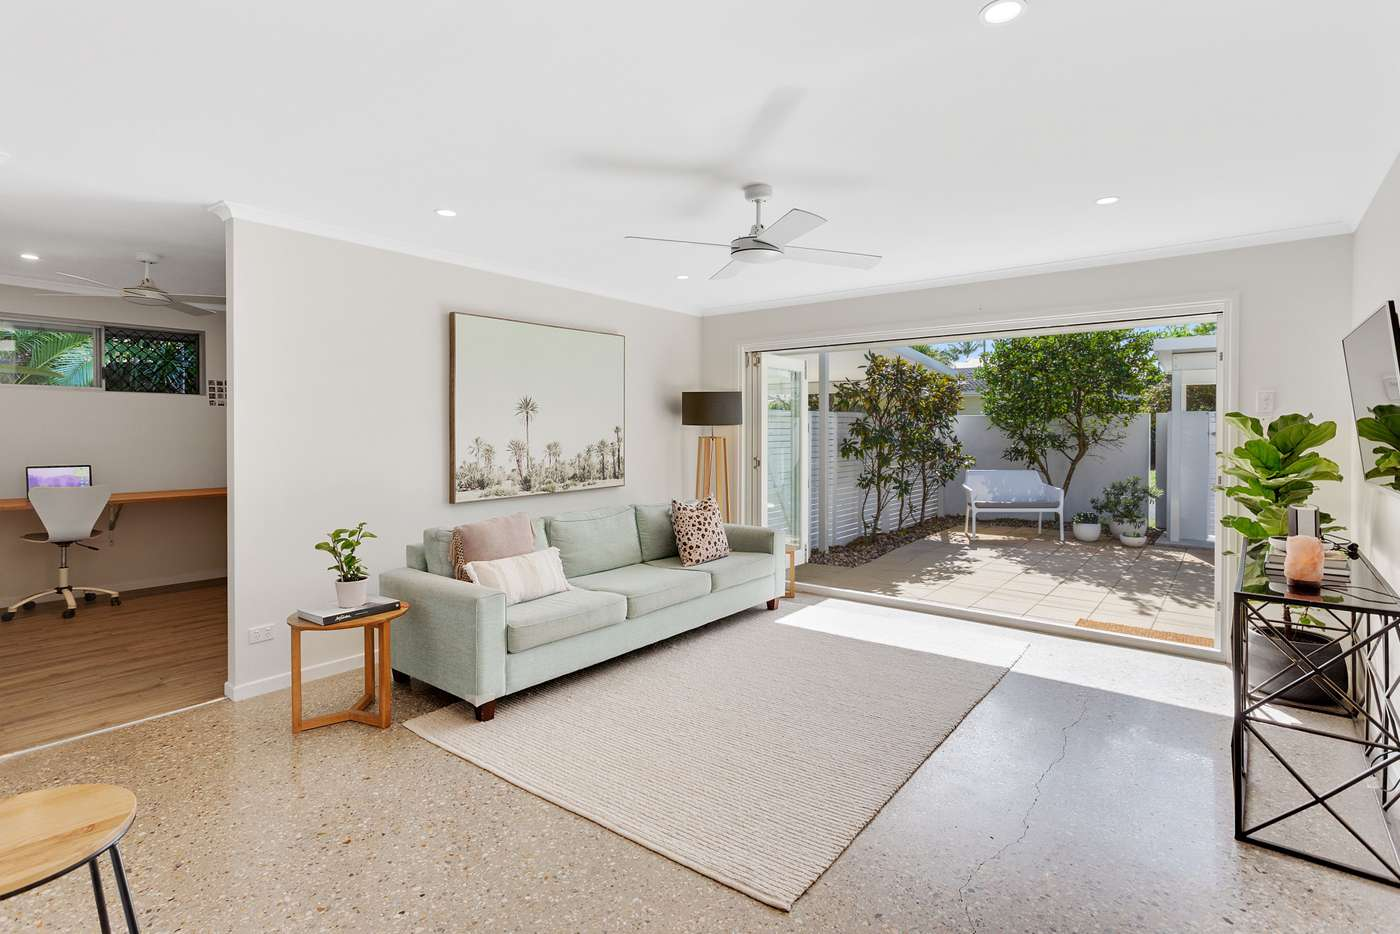 Main view of Homely house listing, 5 Koel Street, Noosaville QLD 4566